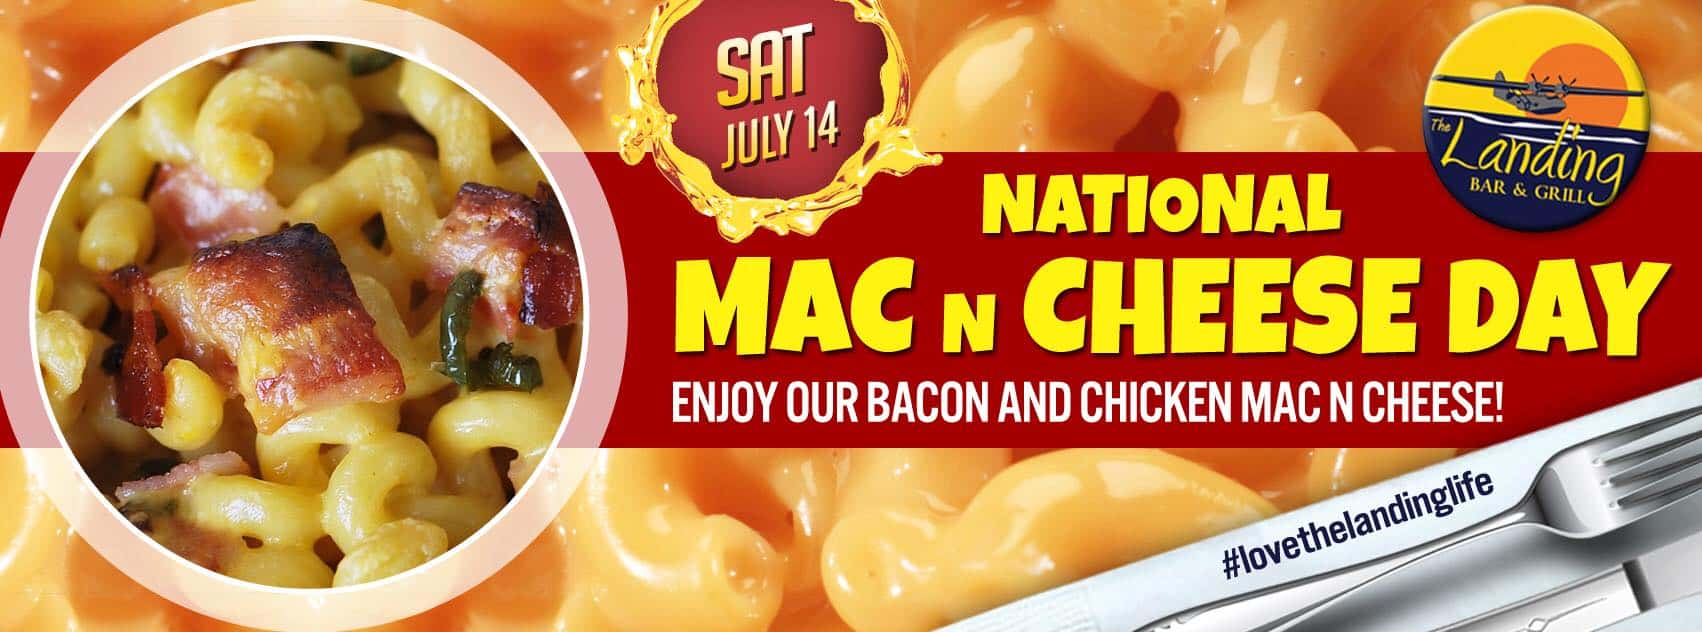 mac-and-cheese-day